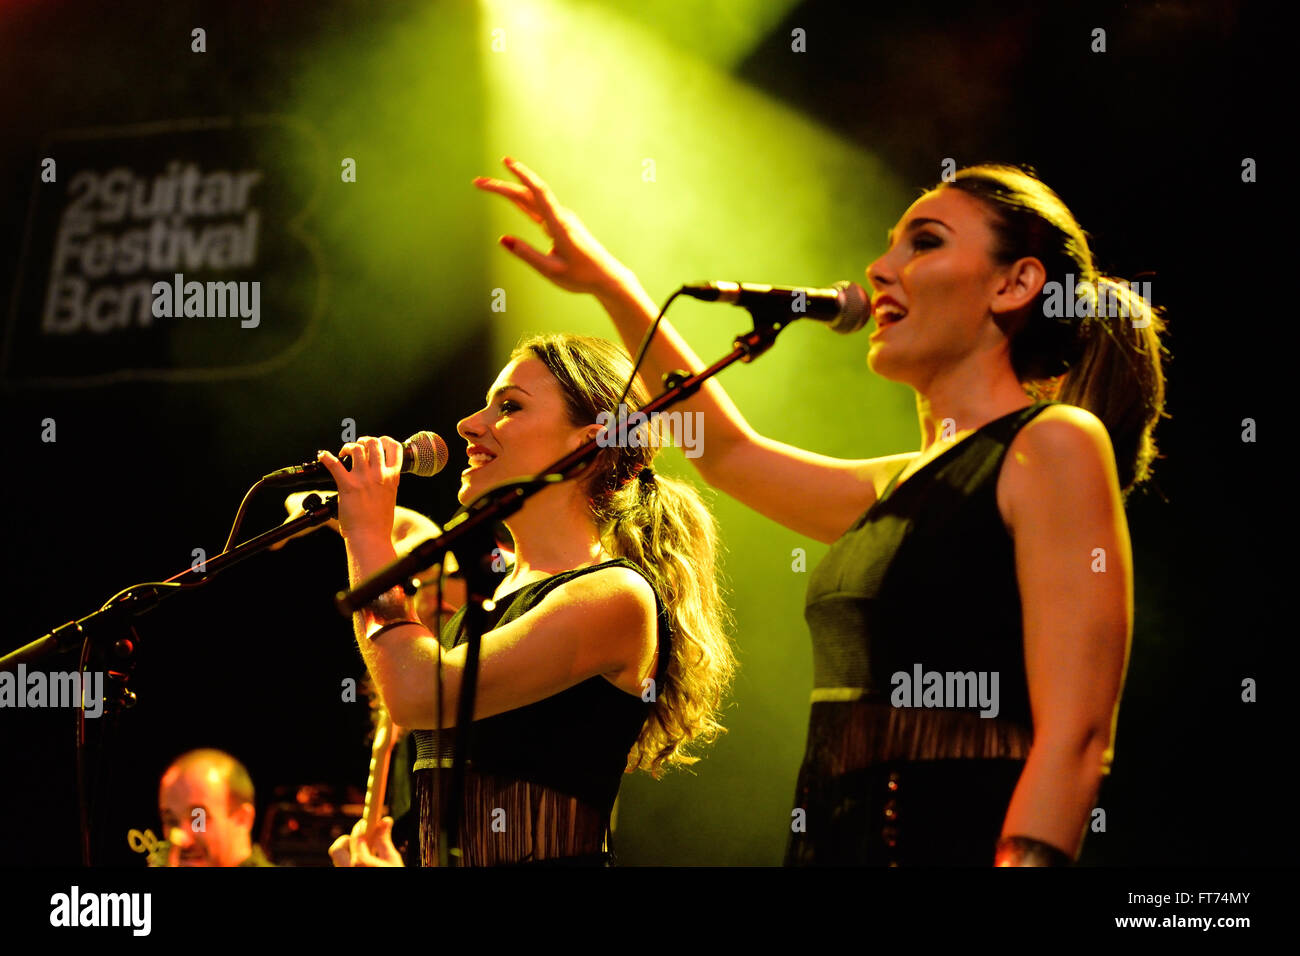 BARCELONA - MAY 15: Aurora and the Betrayers (band) performance at Barts stage on May 15, 2014 in Barcelona, Spain. - Stock Image